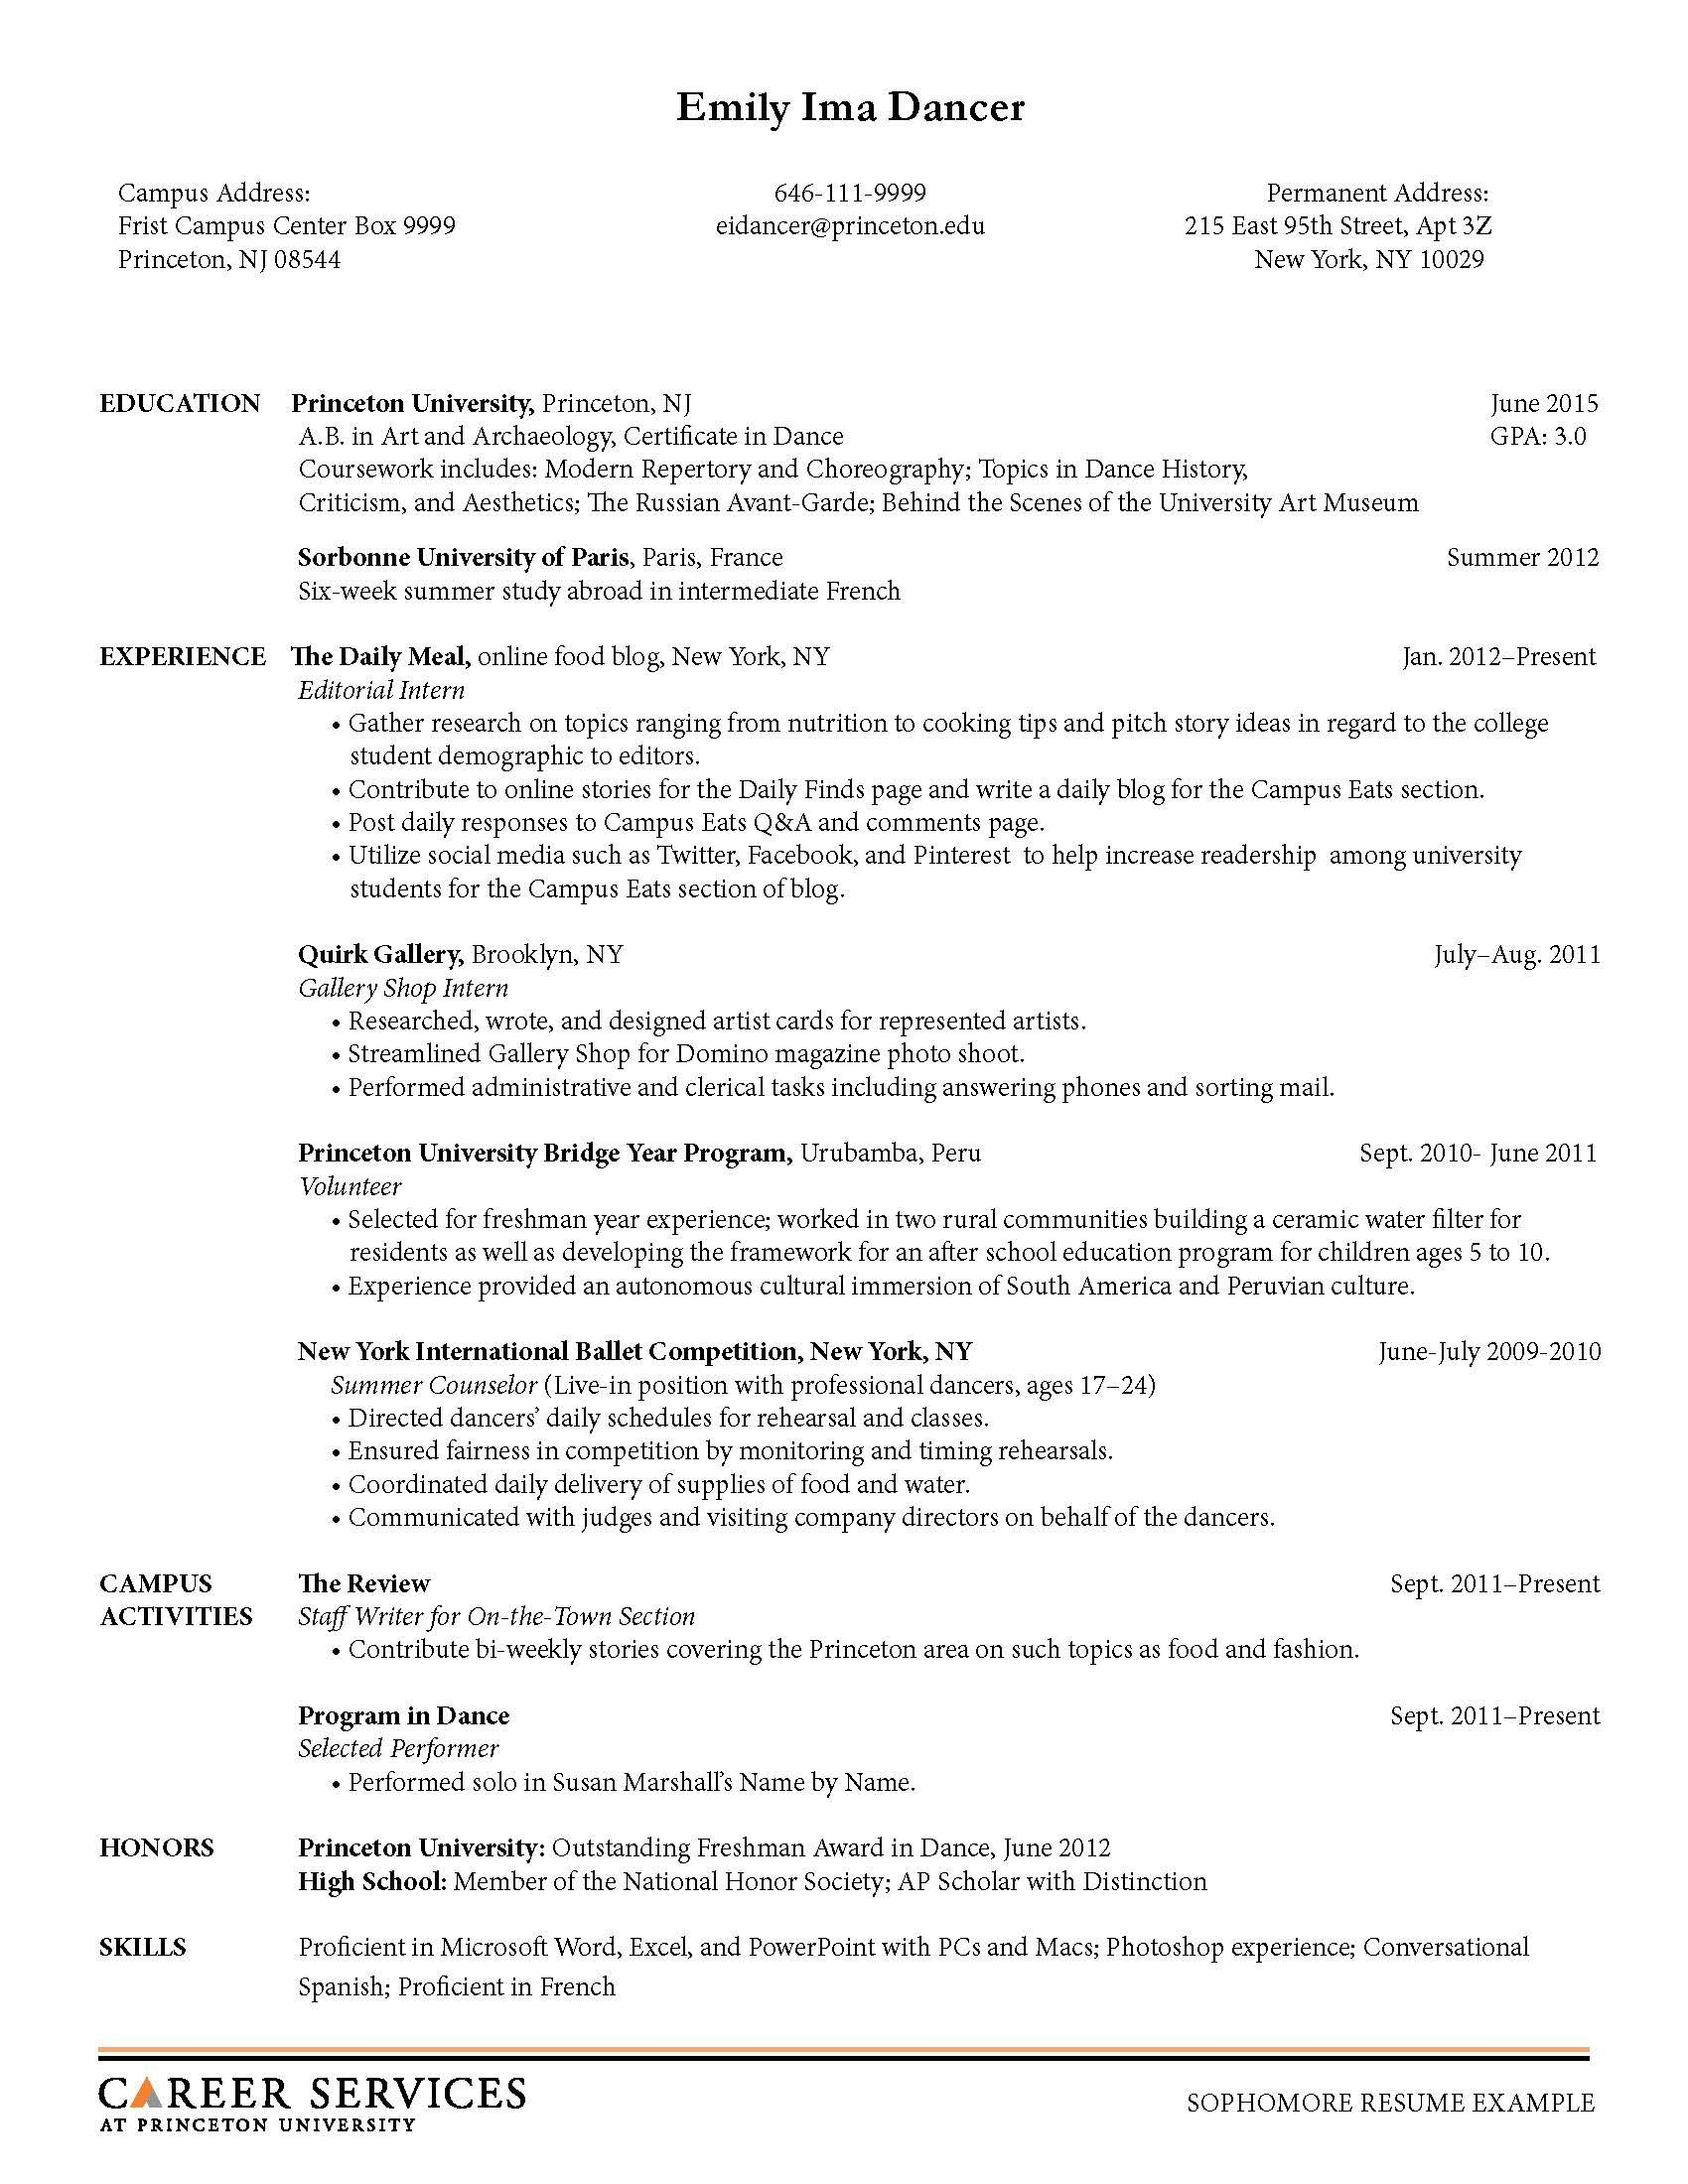 Picnictoimpeachus  Stunning Sample Resume Resume And Career On Pinterest With Exciting Objective Example Resume Besides Berkeley Resume Furthermore Visually Appealing Resume With Adorable Maintenance Technician Resume Sample Also Office Resume Examples In Addition Sample Consulting Resume And Tester Resume As Well As Resume Objective Template Additionally Dialysis Nurse Resume From Pinterestcom With Picnictoimpeachus  Exciting Sample Resume Resume And Career On Pinterest With Adorable Objective Example Resume Besides Berkeley Resume Furthermore Visually Appealing Resume And Stunning Maintenance Technician Resume Sample Also Office Resume Examples In Addition Sample Consulting Resume From Pinterestcom